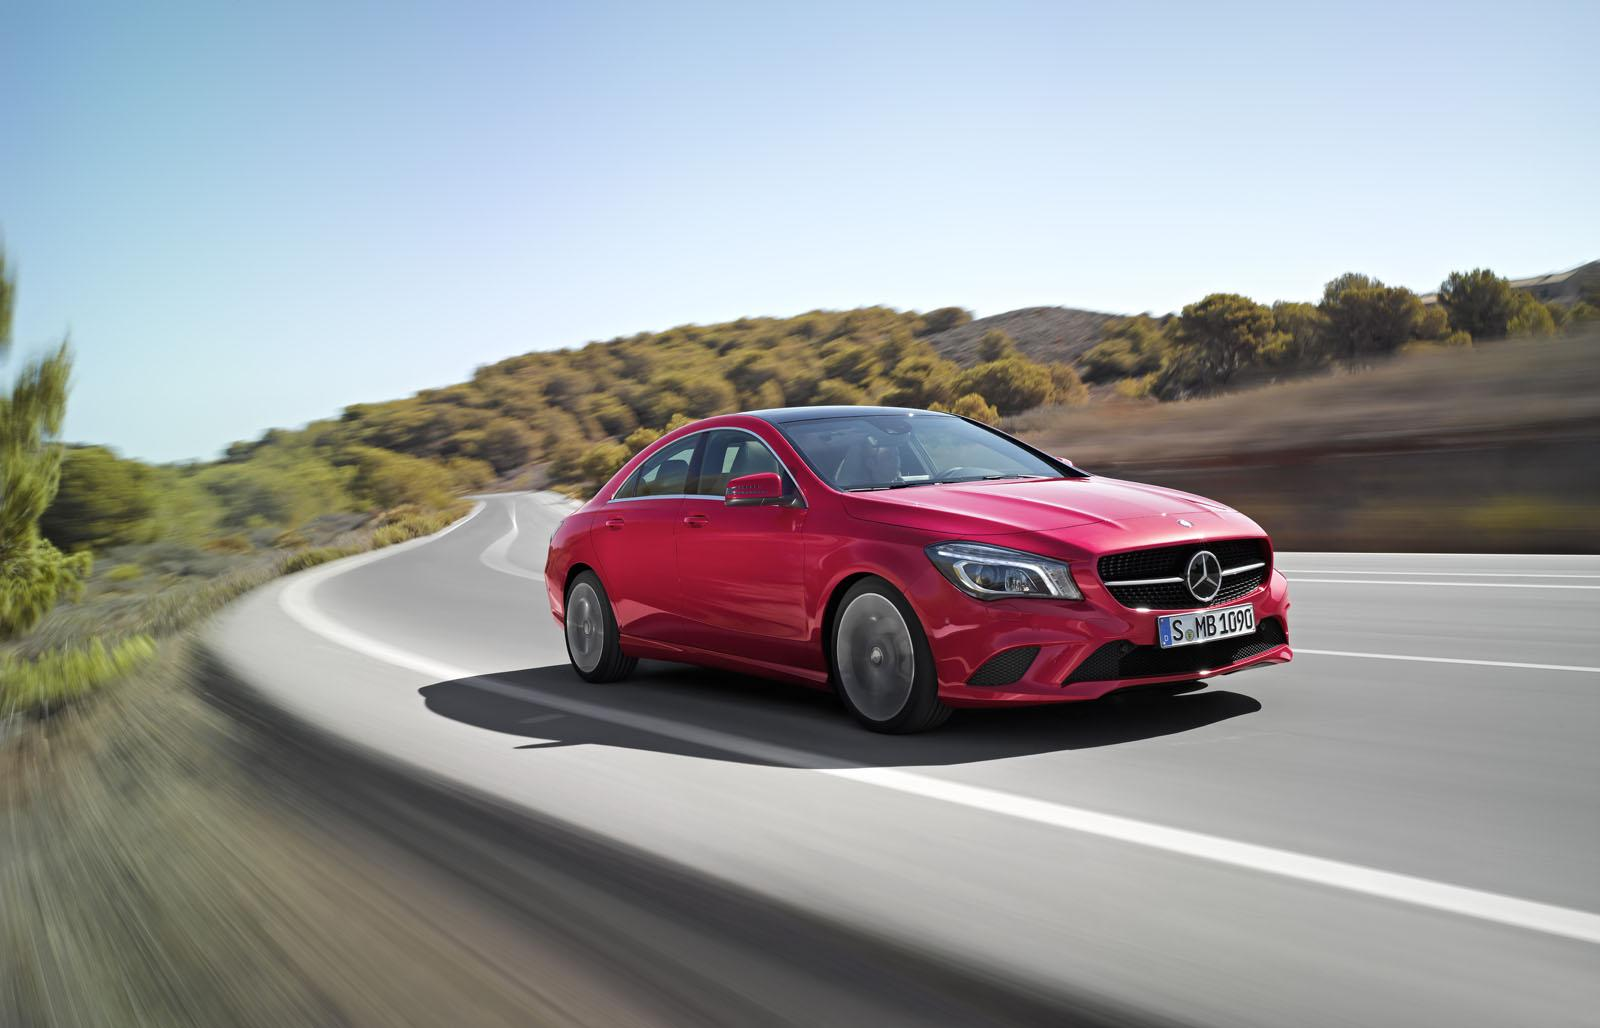 2015 mercedes benz cla price increased in the u s gtspirit. Cars Review. Best American Auto & Cars Review